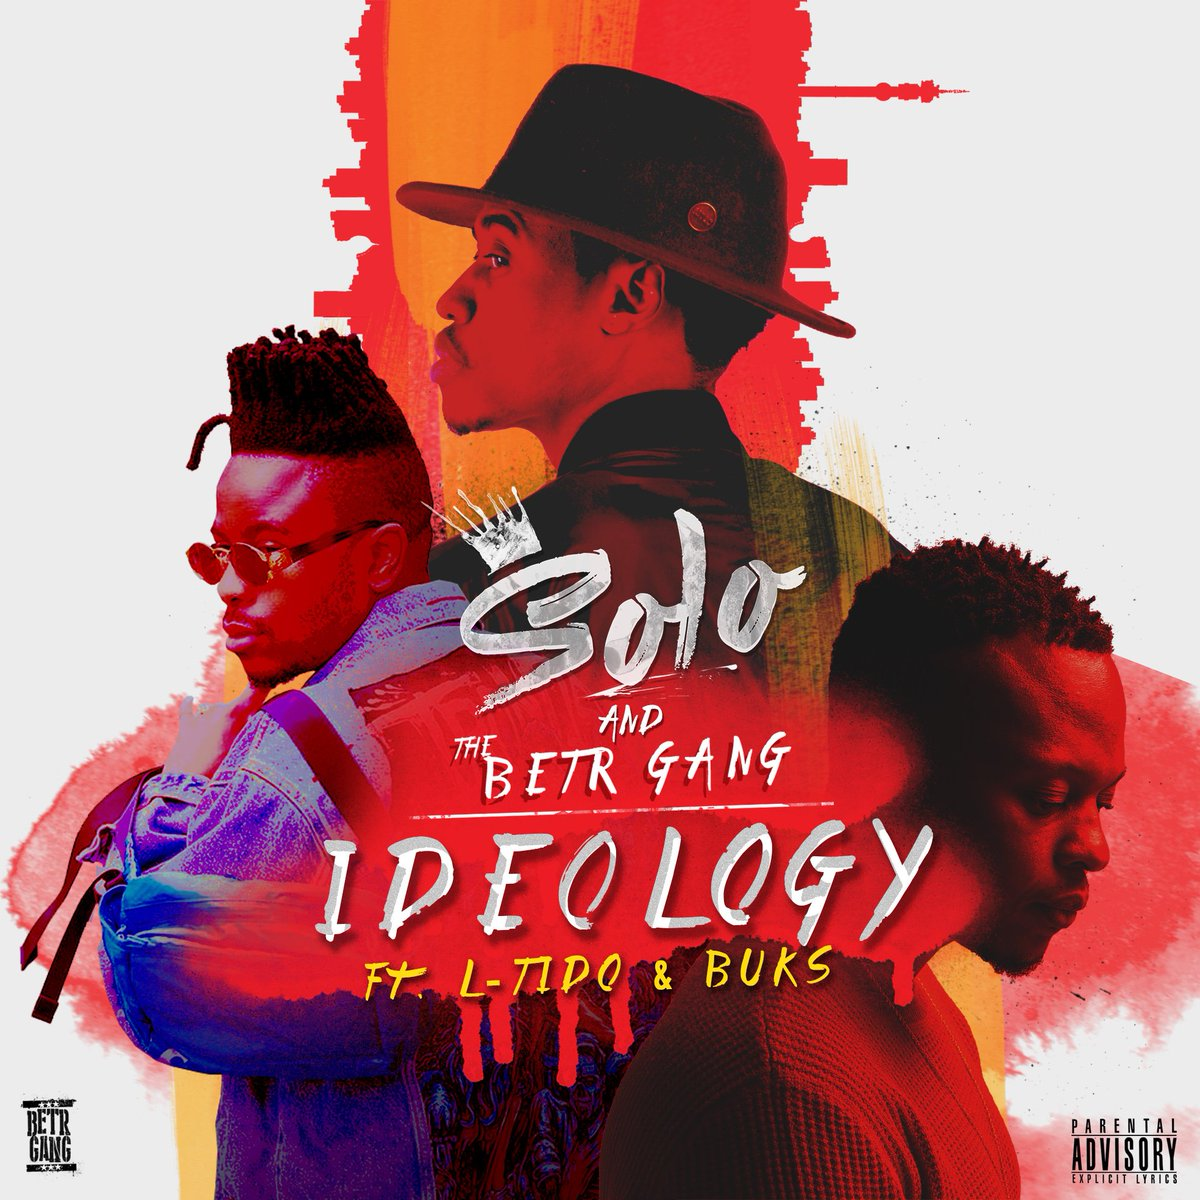 Solo & The BETR GANG – Ideology Ft. Buks, L-Tido